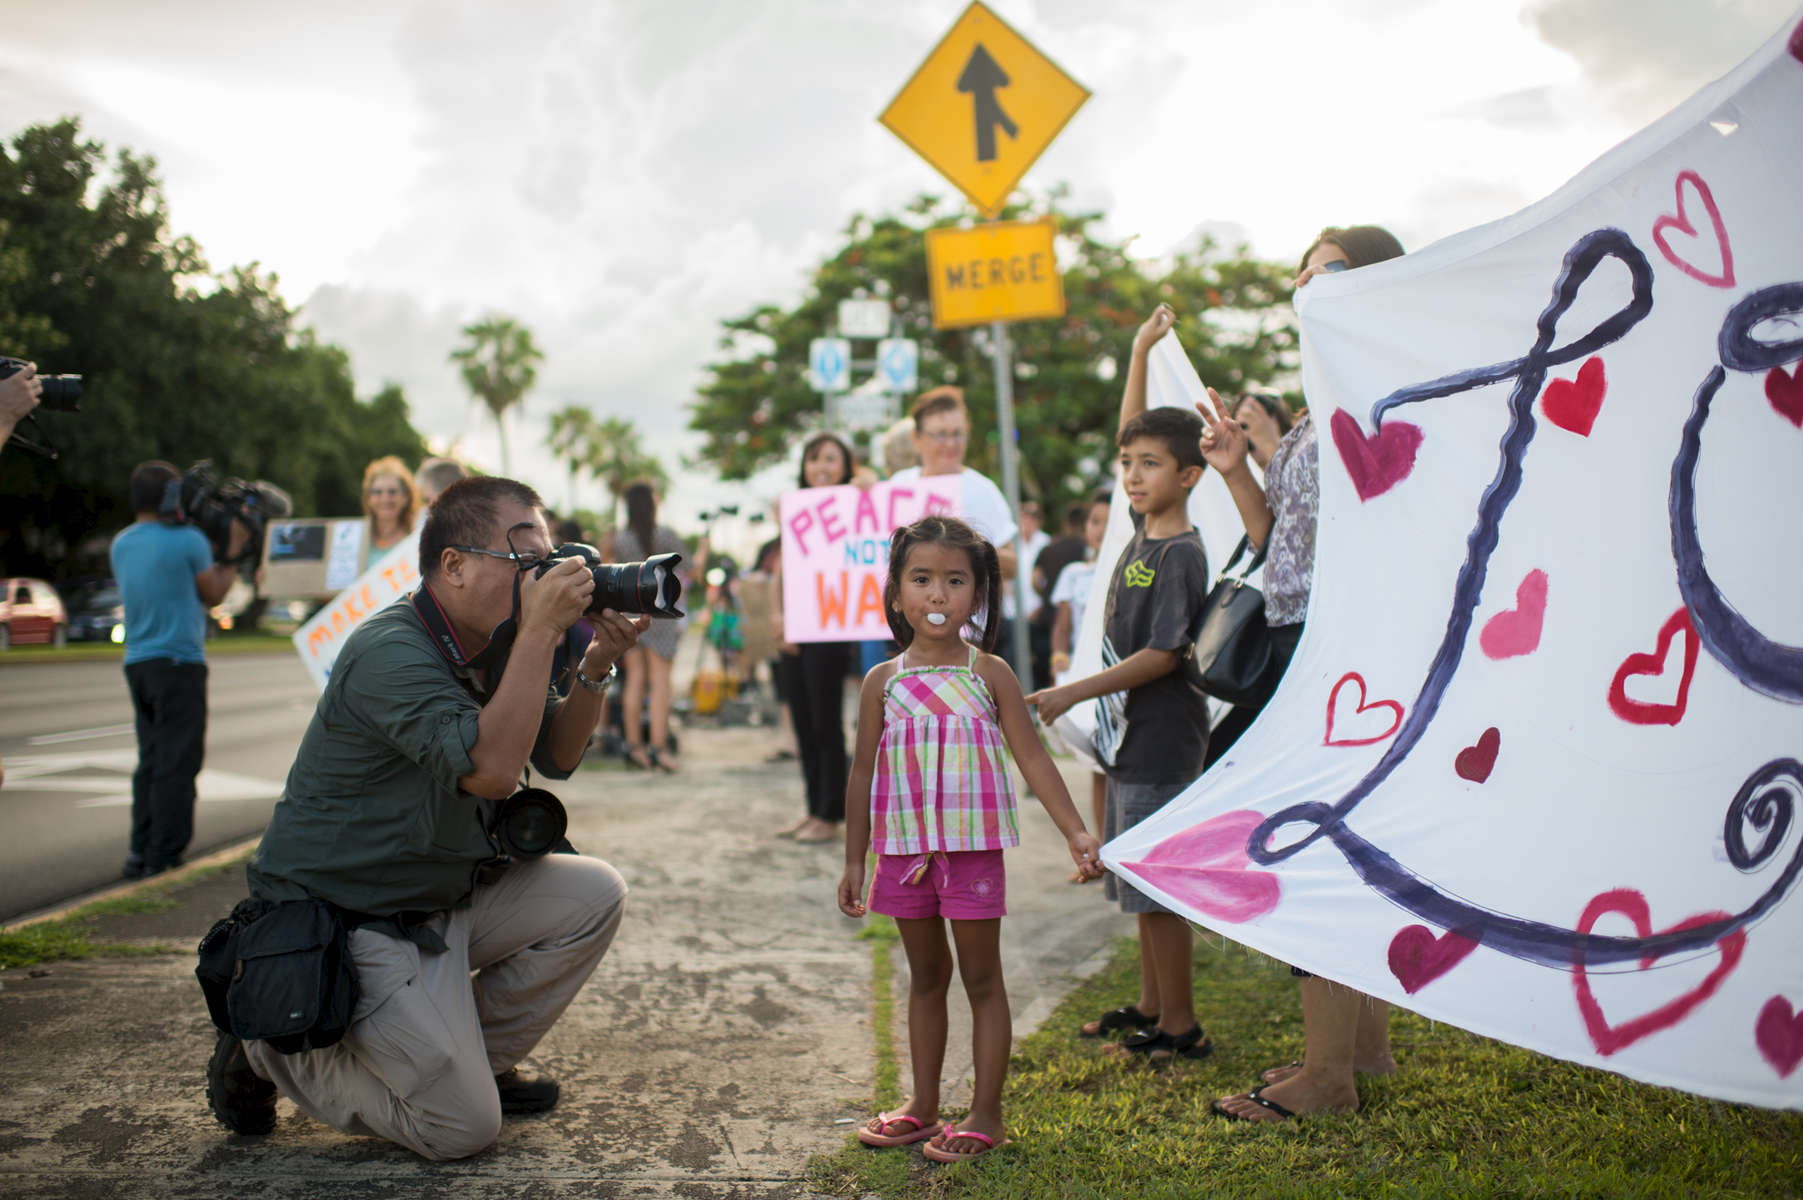 Residents and visitors of Guam rally together at the Maga'lahi Kepuha Loop in Hagatna in a call for peace amidst dangerous threats of war coming from North Korea. Five-year-old Edyn Perez joins in the movement. (Aug. 14, 2017)Photo by Nancy Borowick